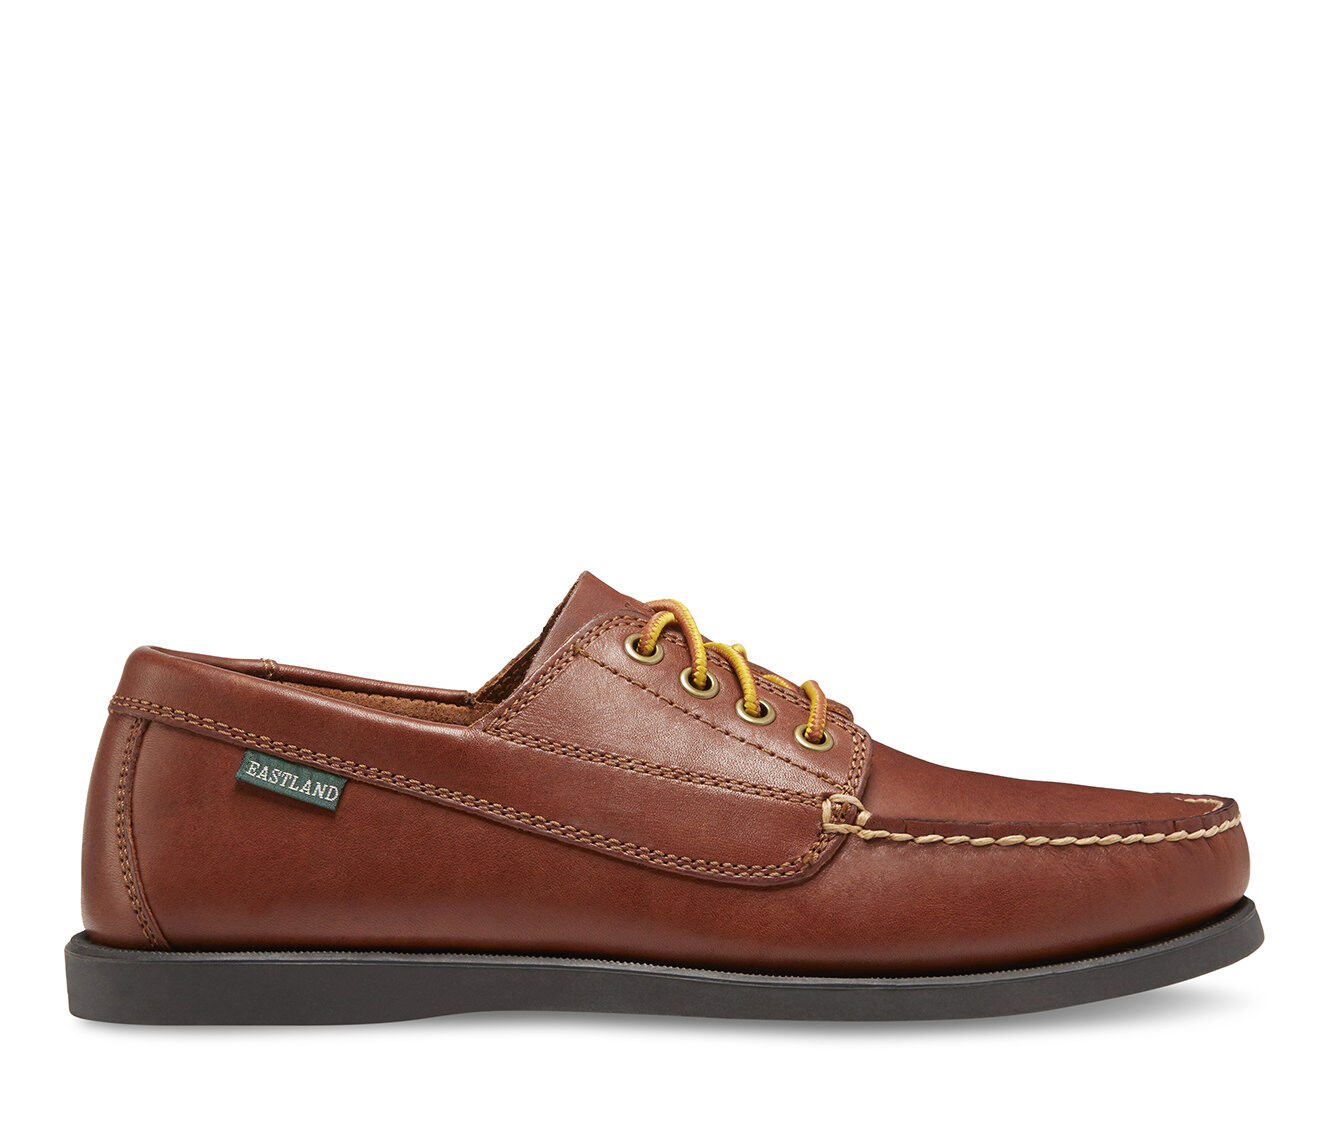 Men's Eastland Falmouth Boat Shoes Tan